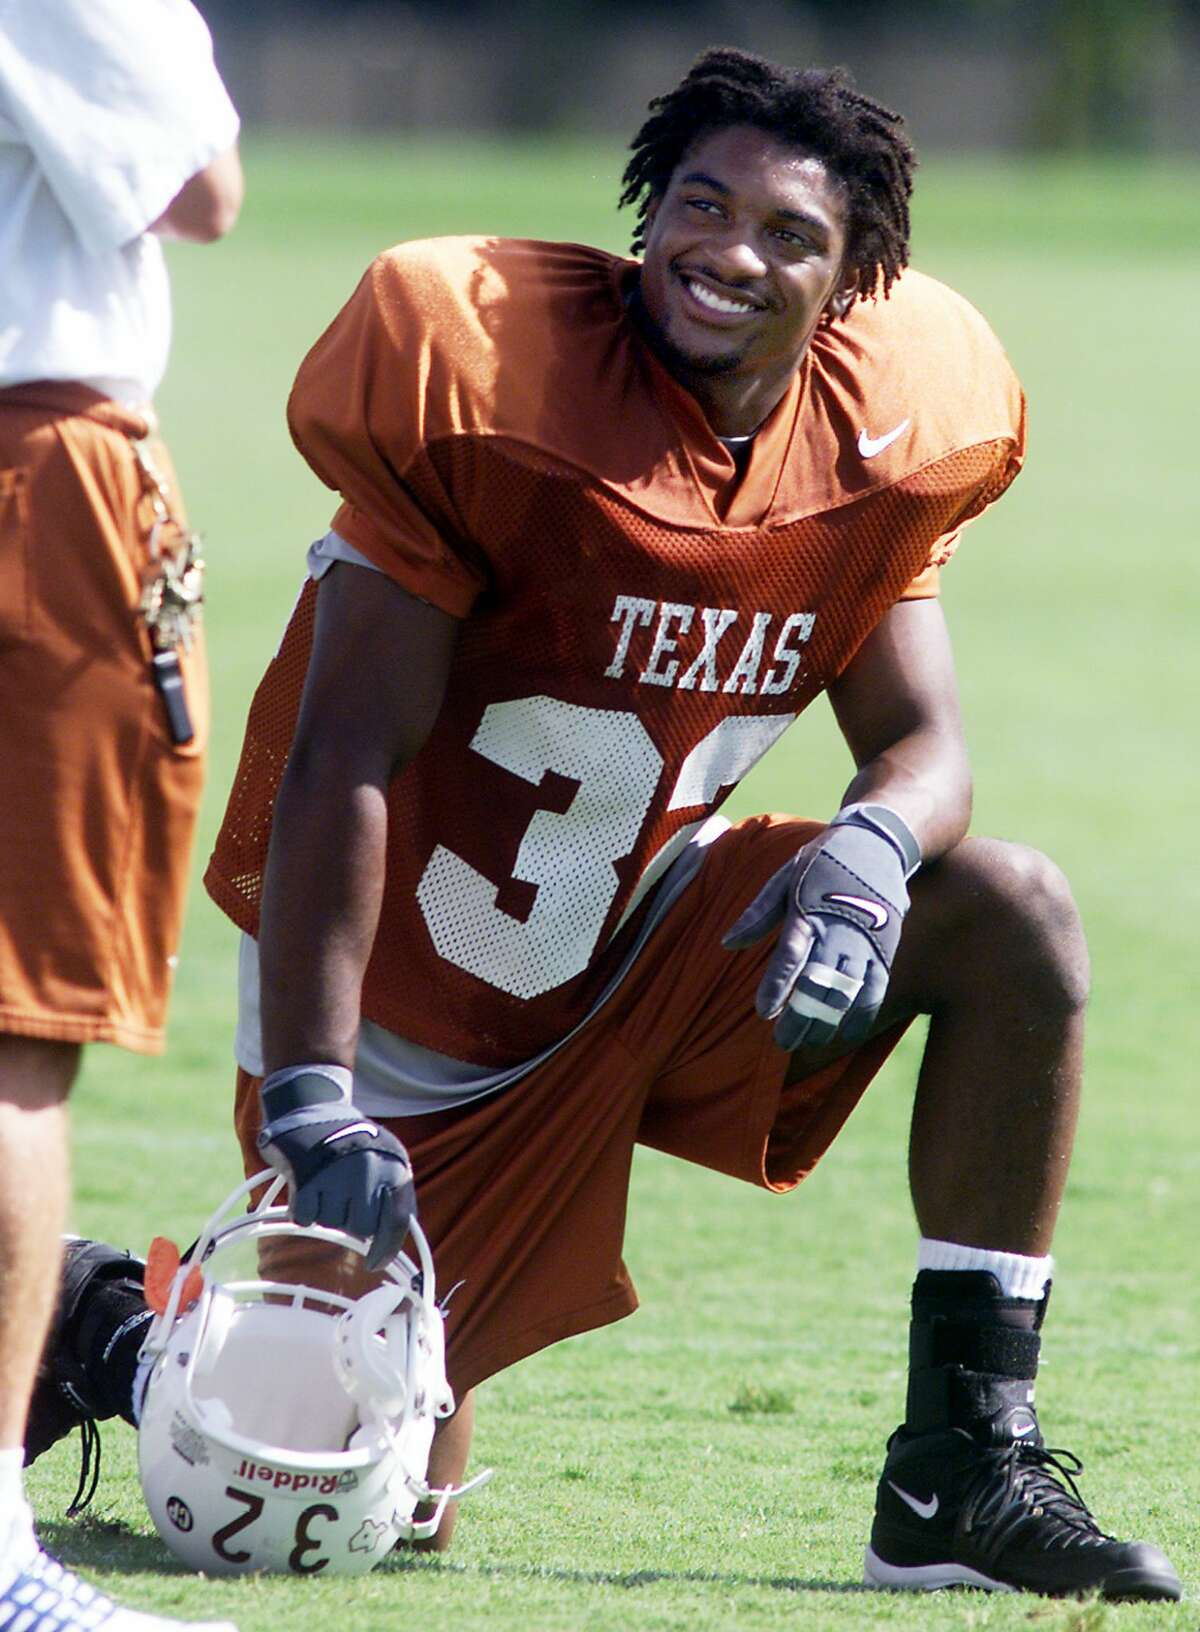 FILE PHOTO:University of Texas running back Cedric Benson takes a break from practice at Denius Field in Austin, Texas, in this Aug. 8, 2001 file photo. Benson, the Big 12 freshman of the year last season, was arrested on misdemeanor drug and alcohol possession charges. (AP Photo/Austin American-Statesman, Brian K. Diggs, file)